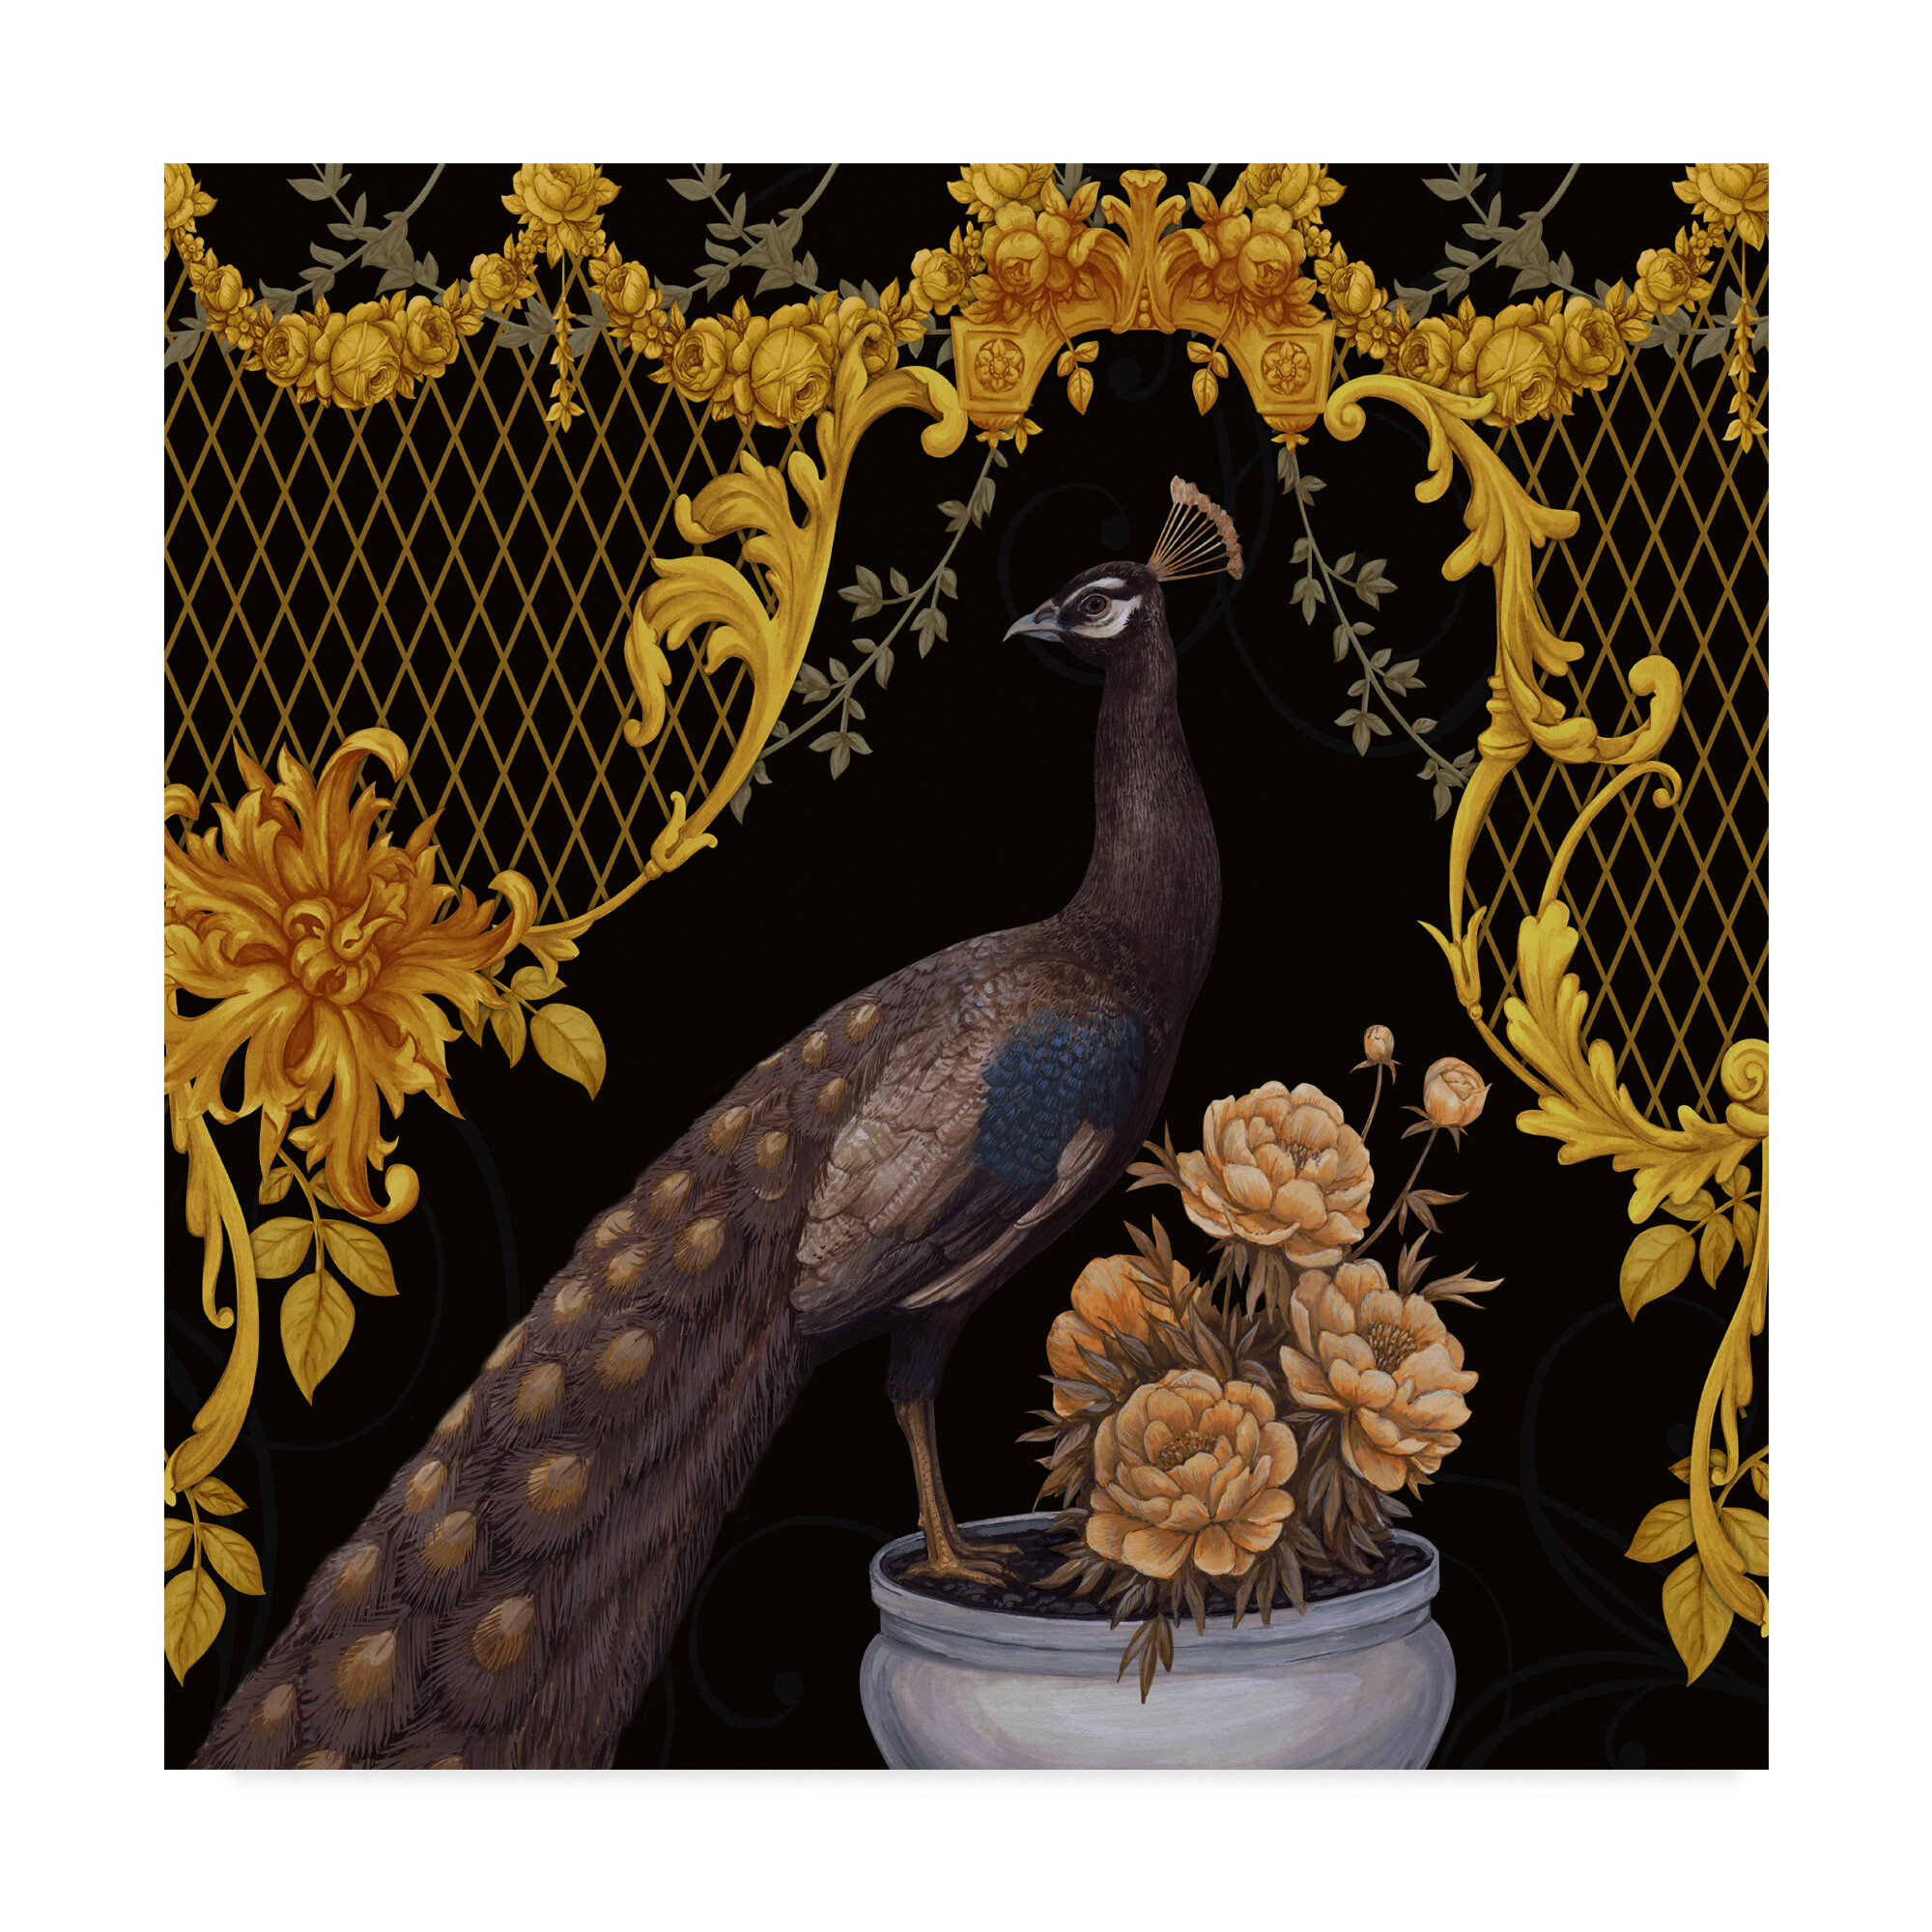 Trademark Art Black Peacock Graphic Art Print On Wrapped Canvas Wayfair